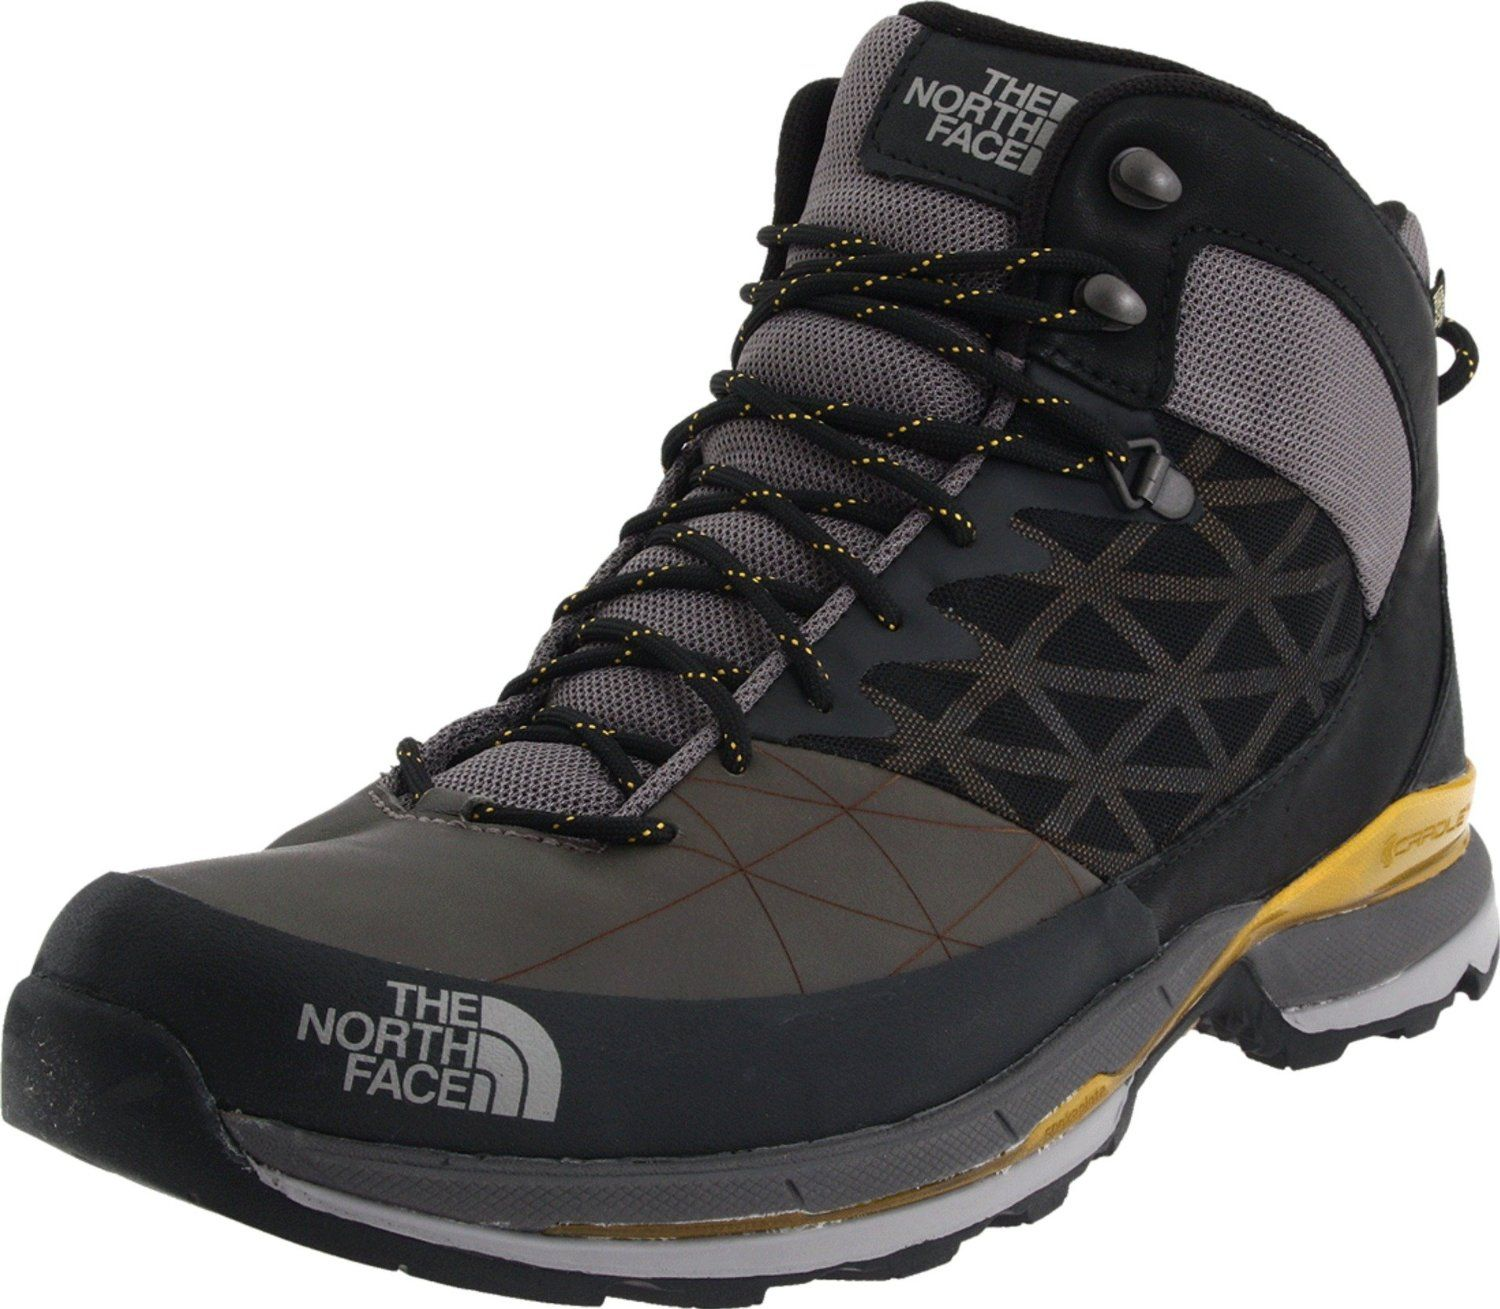 31++ North face hiking boots ideas information